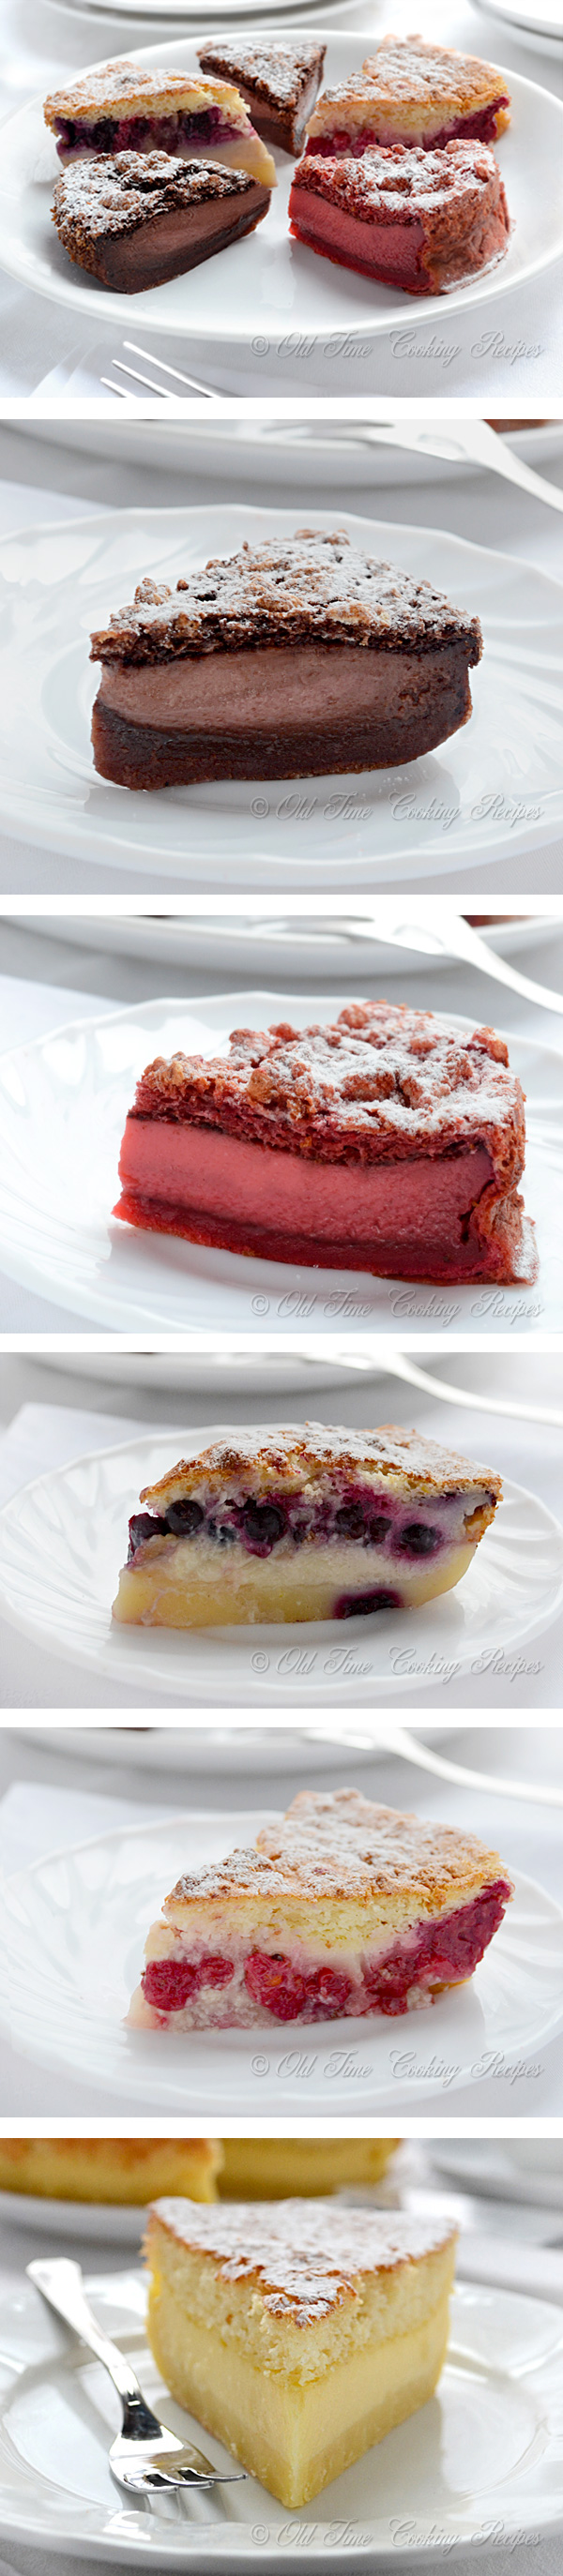 ... fruit bottom cake recipe from tablespoon fruit bottom cake recipe from